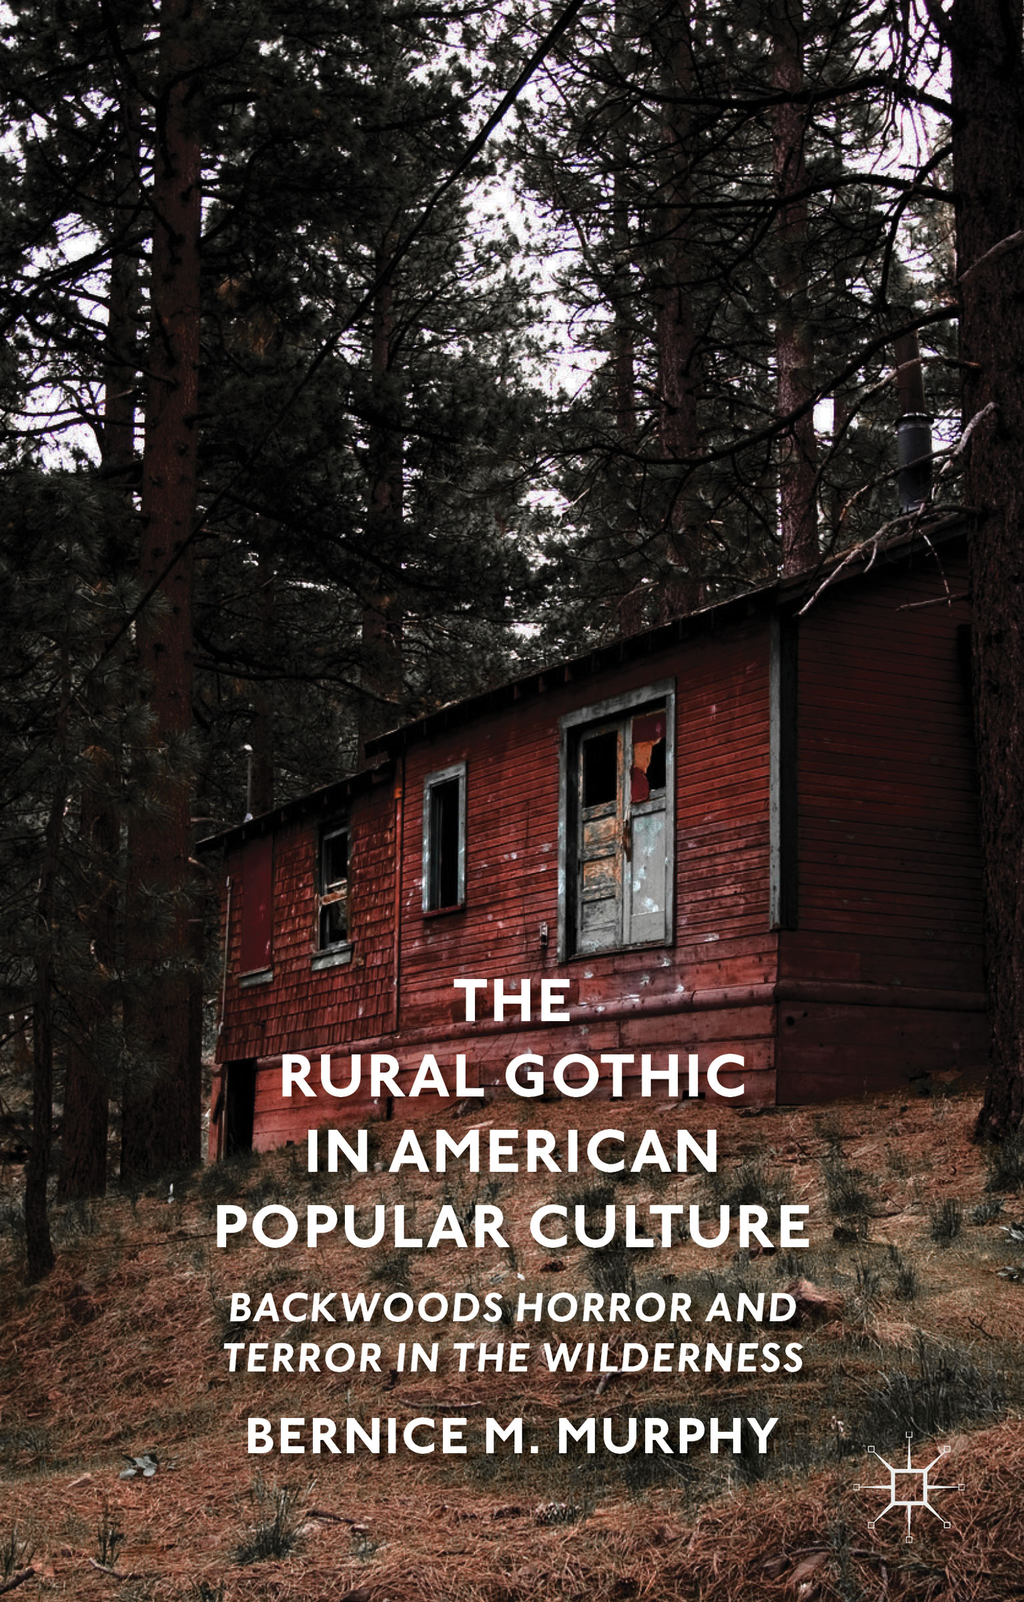 The Rural Gothic in American Popular Culture Backwoods Horror and Terror in the Wilderness